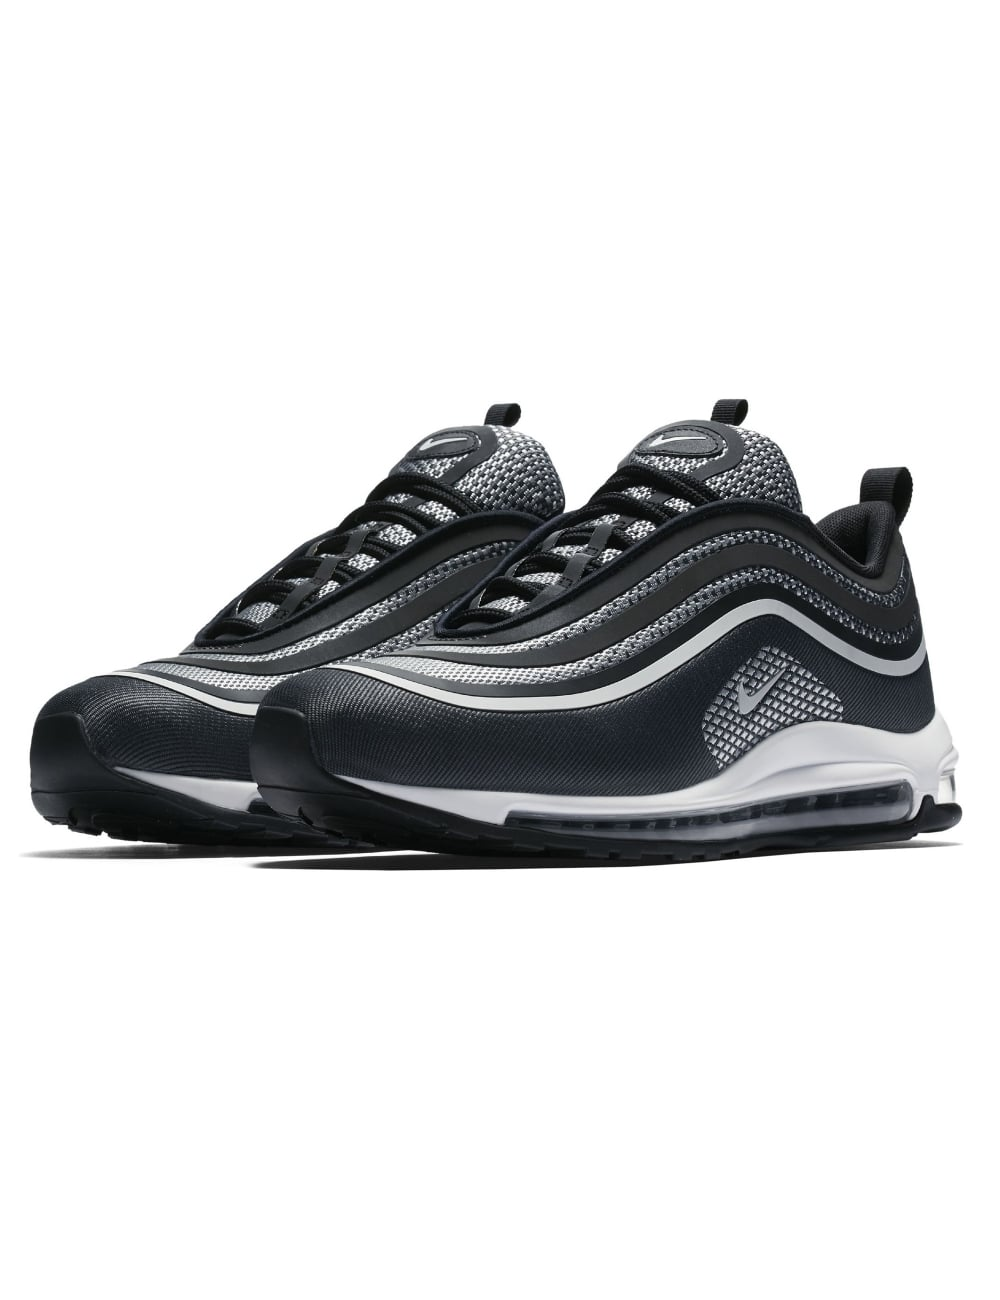 online retailer 1b21a 2f38d Nike Air Max 97 Ultra  17 OG Shoes - Black Pure Platinum